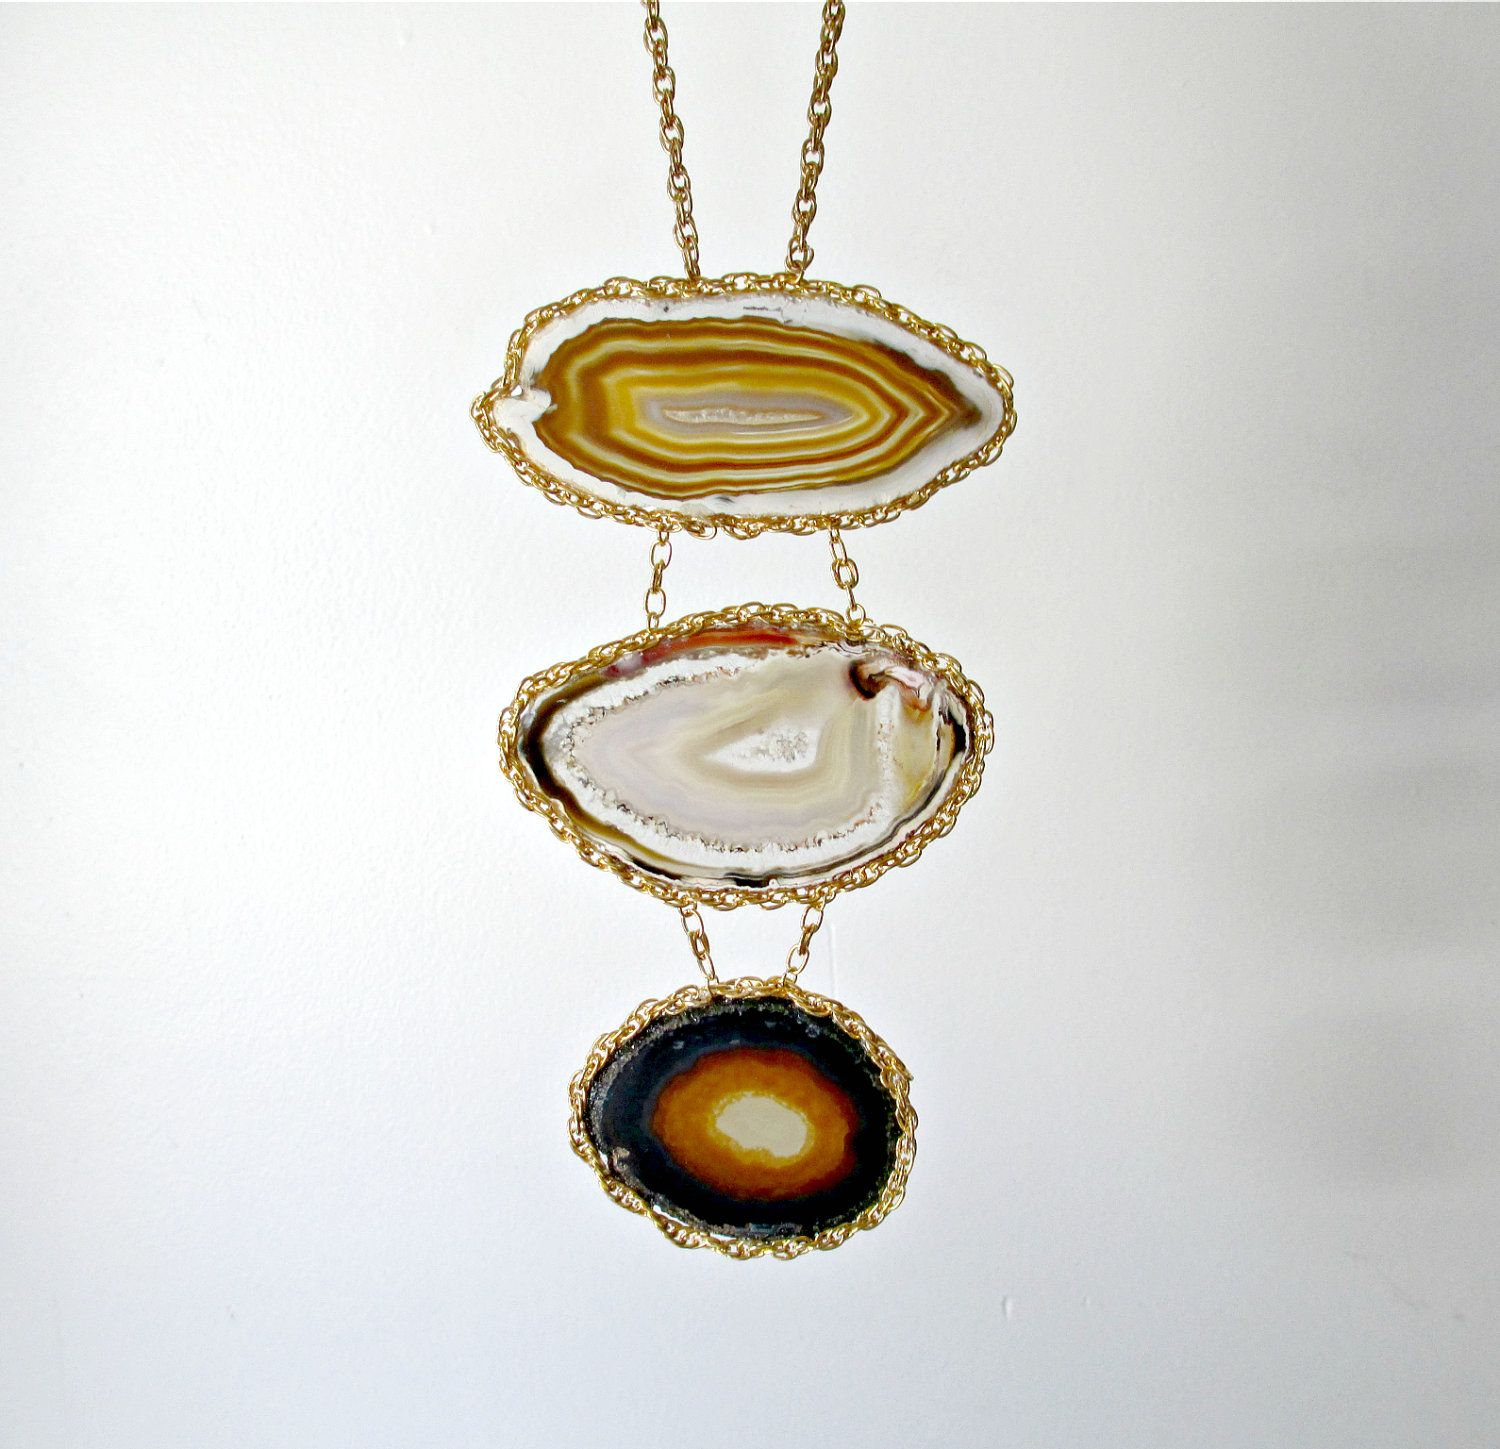 Agate Stone Geode Statement Necklace Happening by Larkin and Larkin